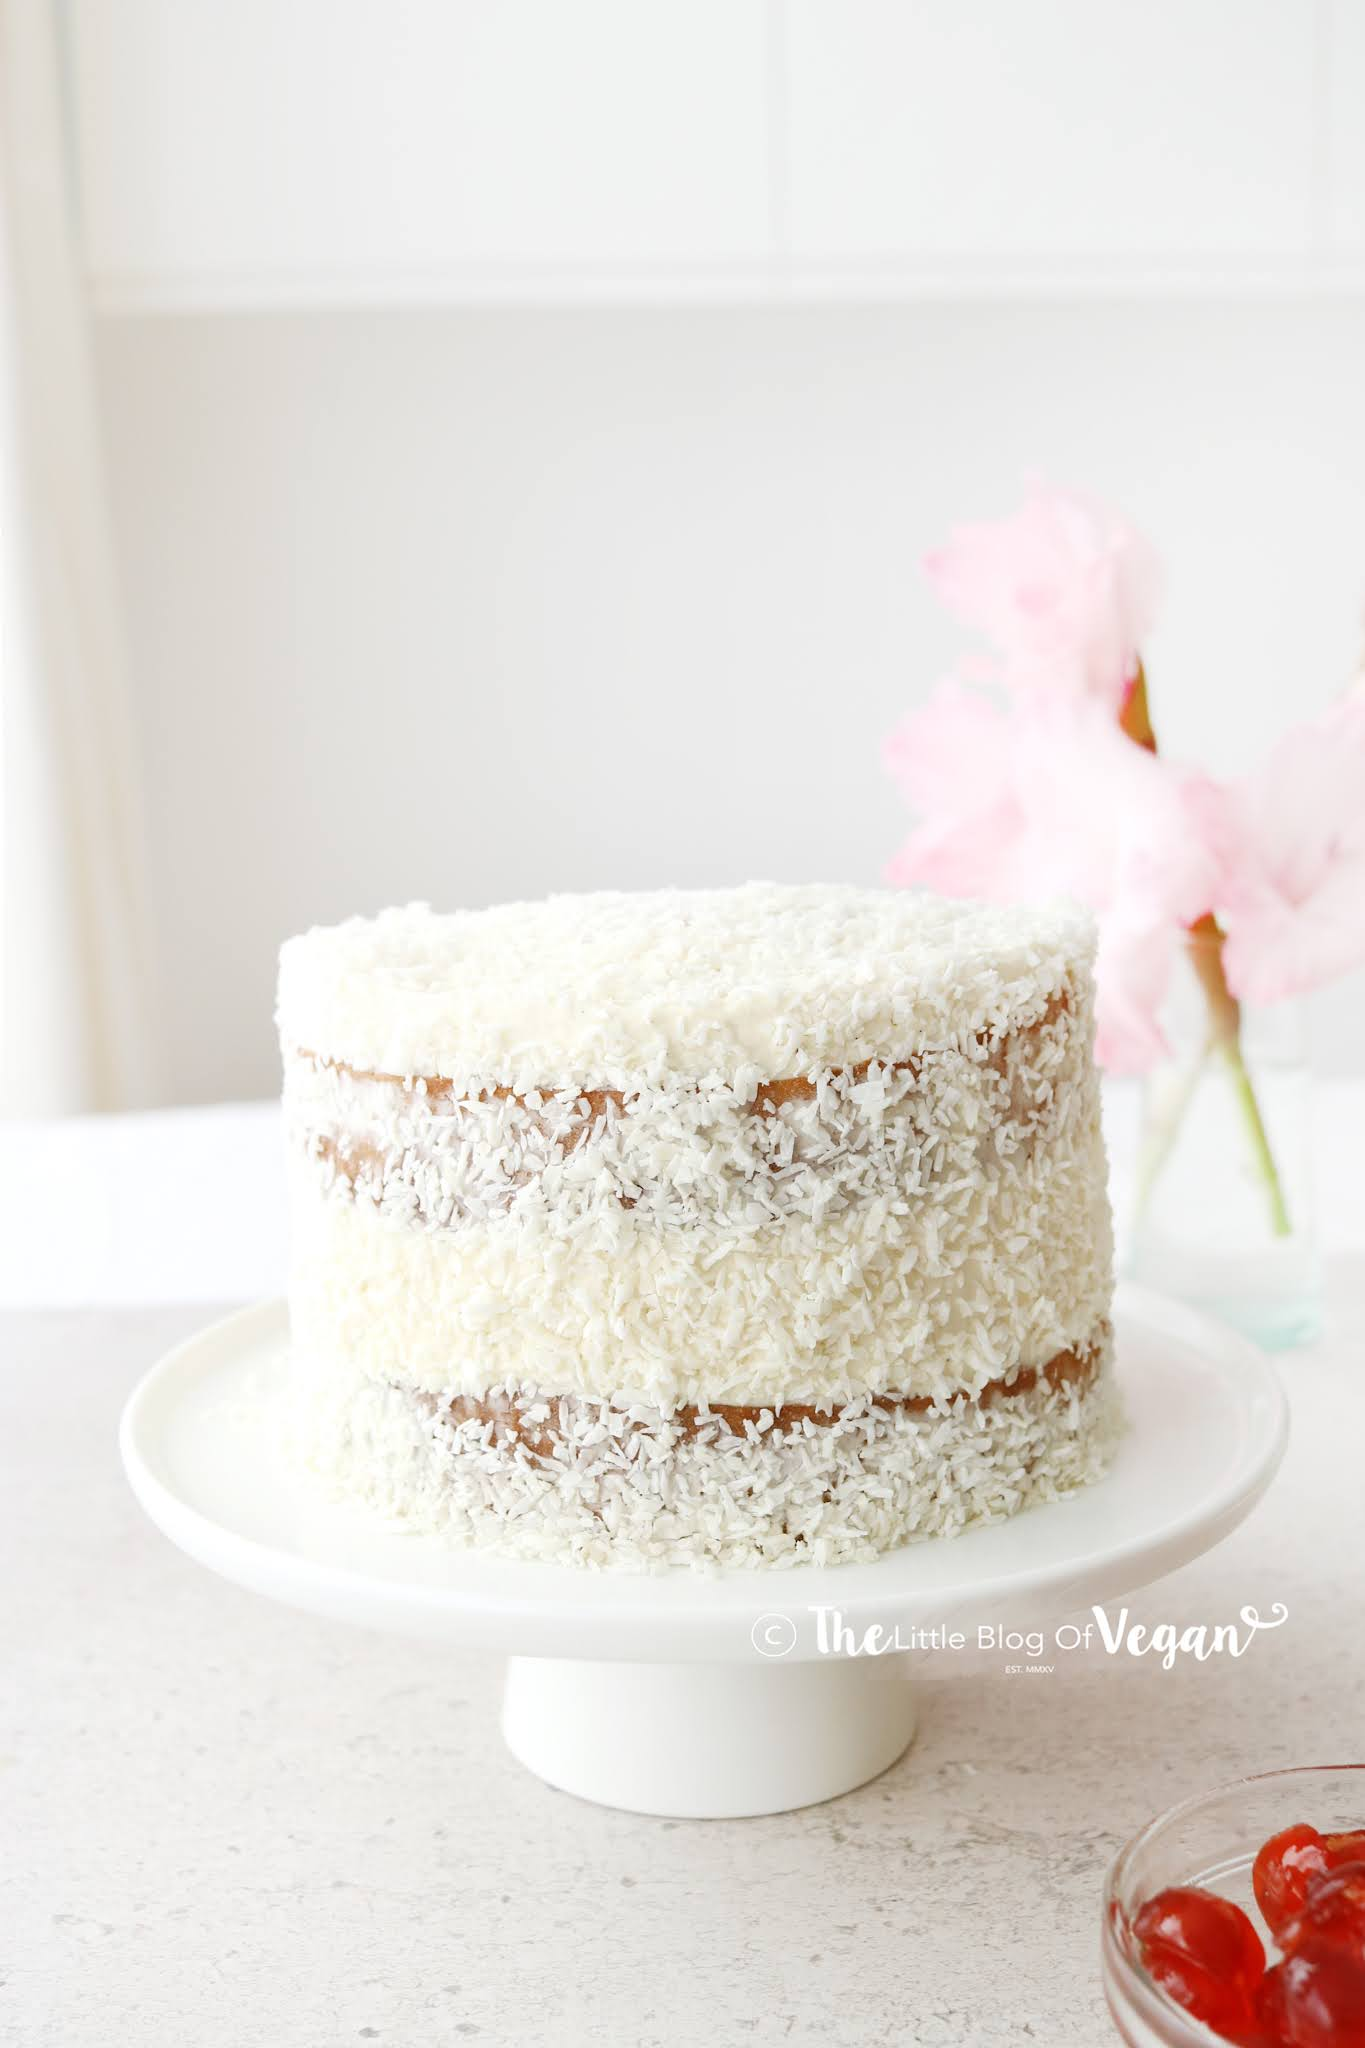 Cake coveted in coconut